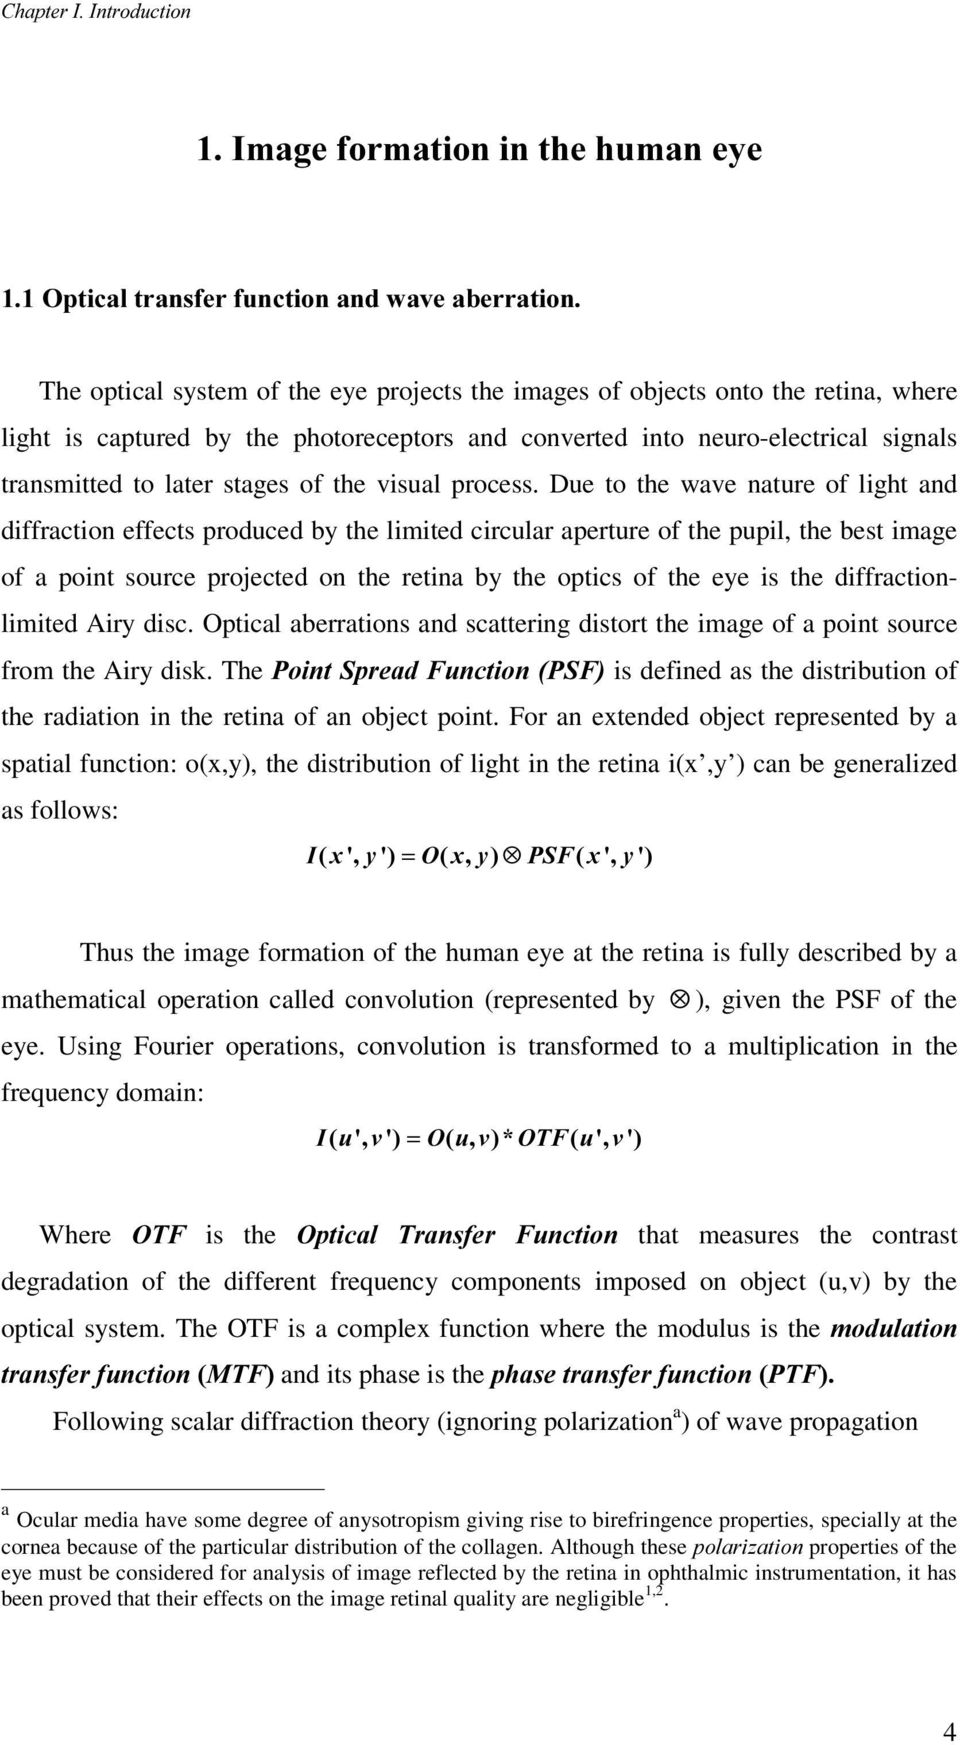 Due to the wave nature of light and diffraction effects produced by the limited circular aperture of the pupil, the best image of a point source projected on the retina by the optics of the eye is